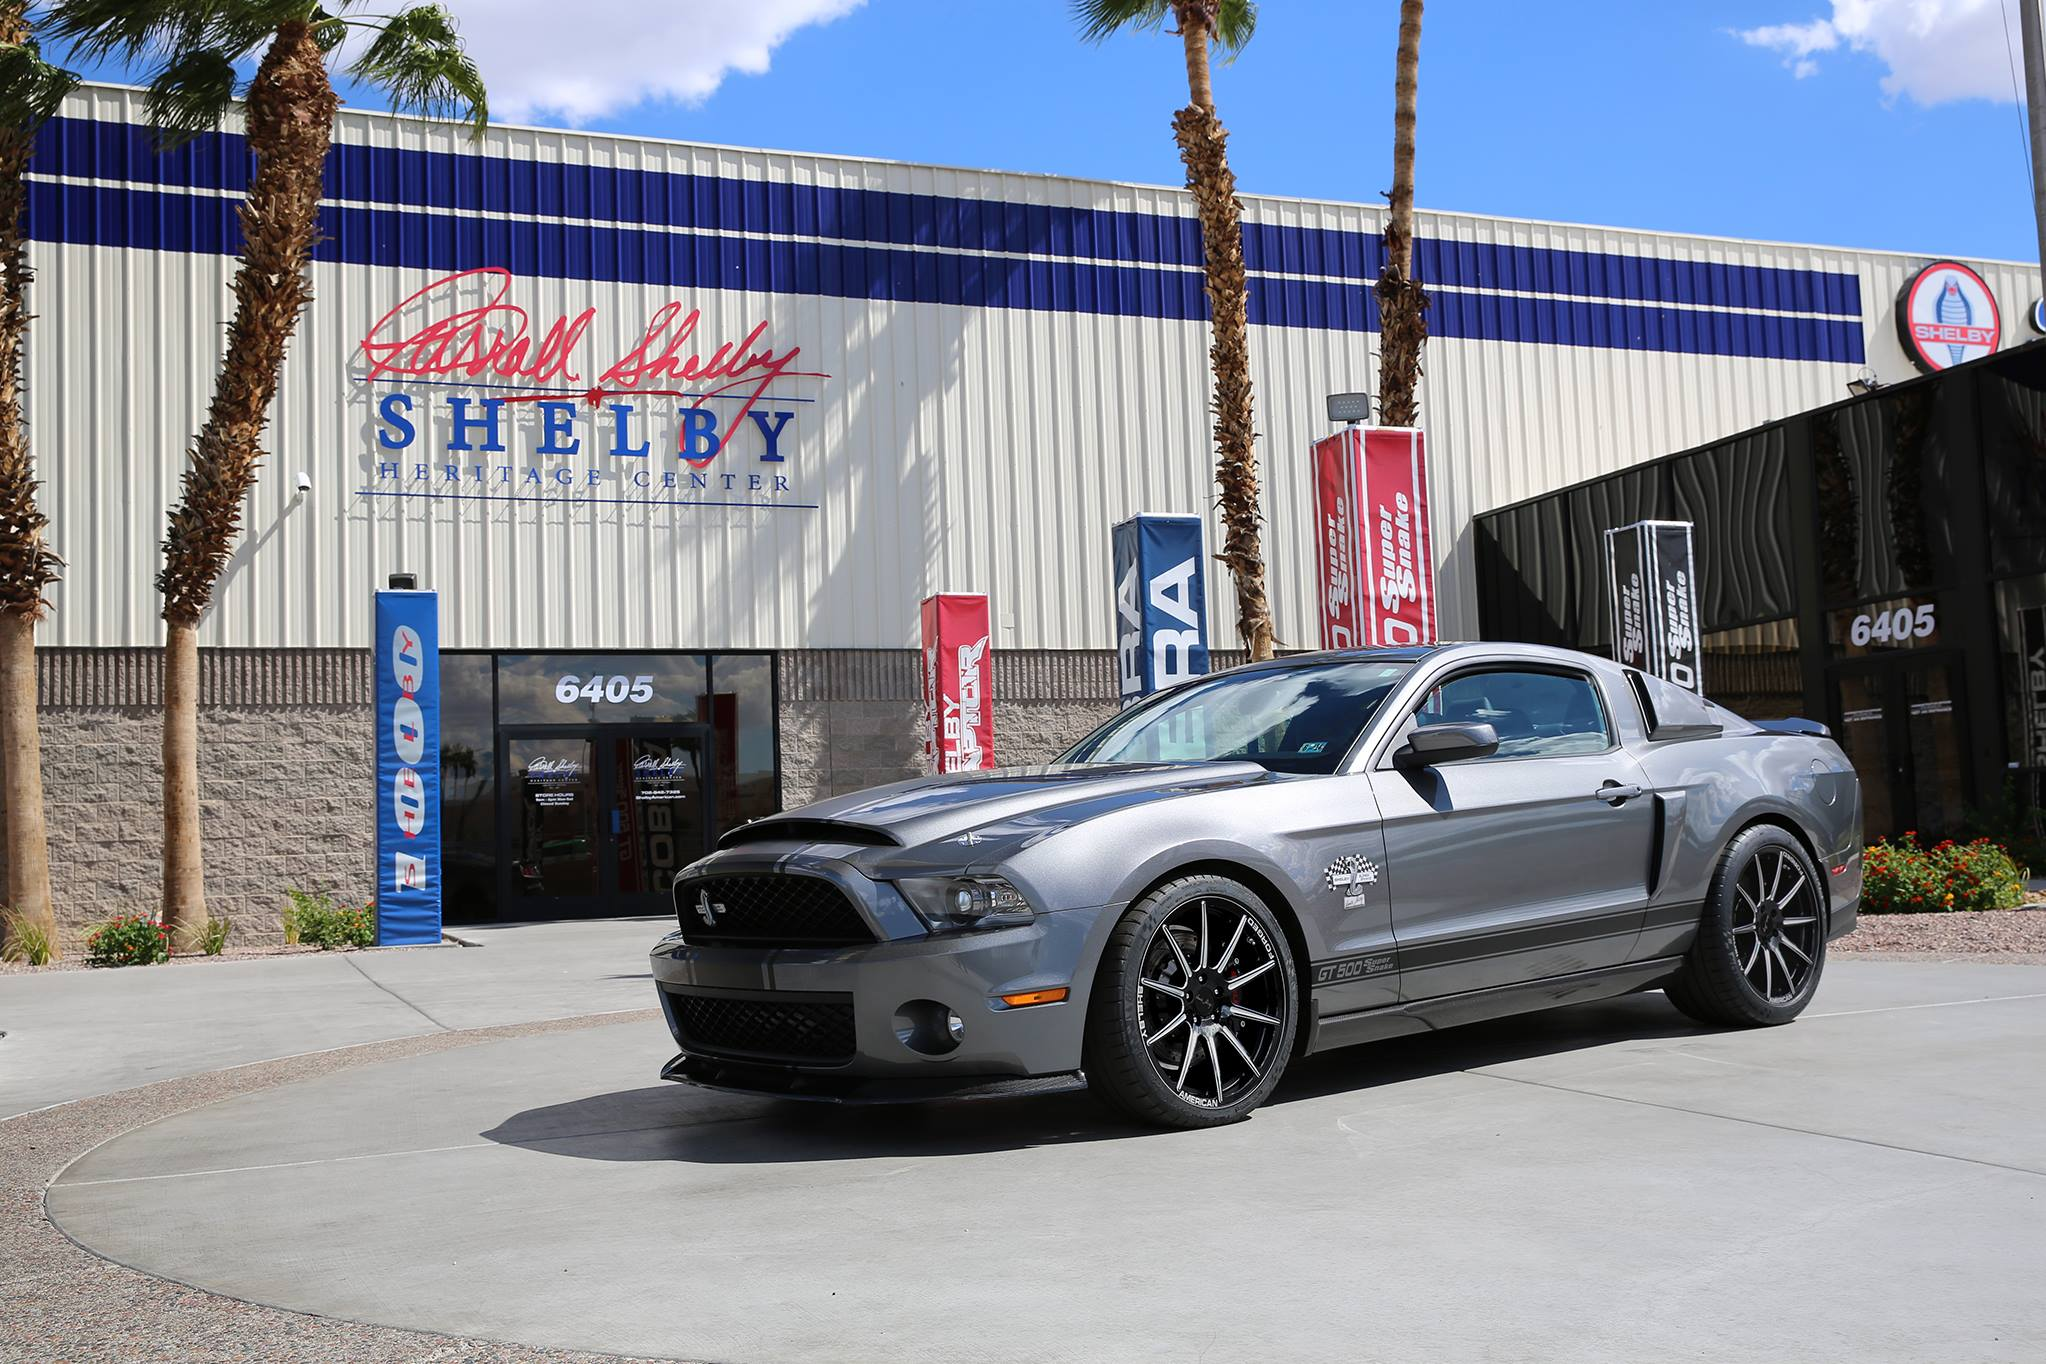 Shelby gt500 super snake gets the signature edition treatment limited to 50 examples